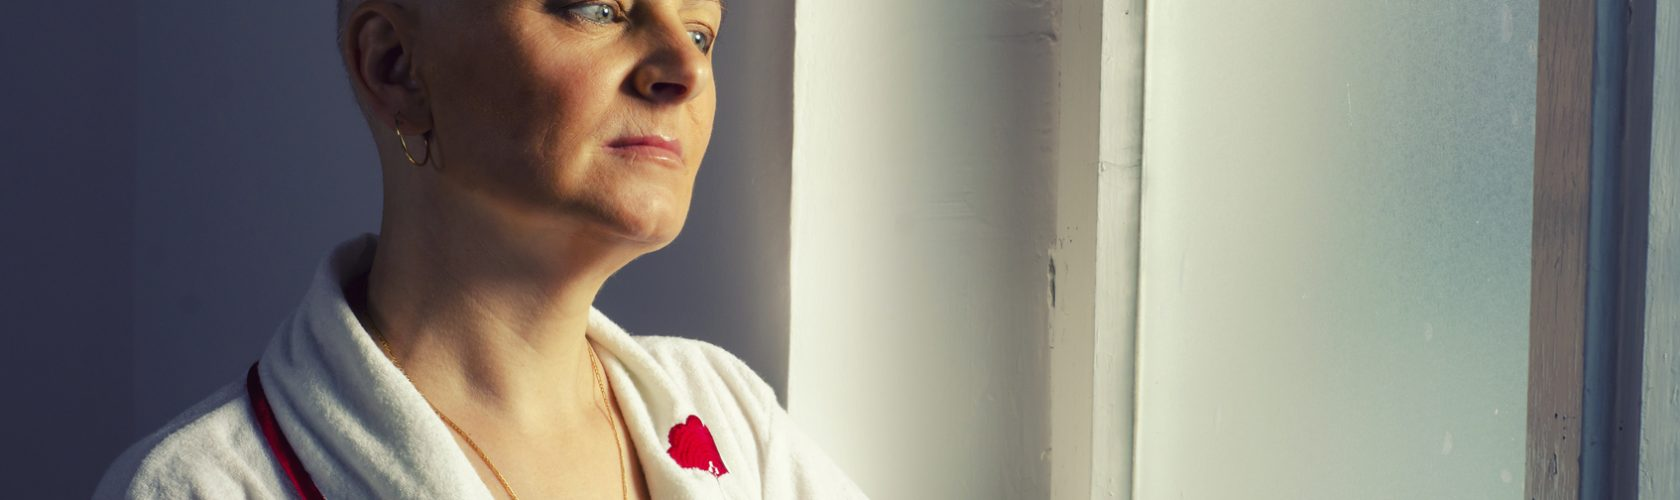 Bald woman suffering from cancer looking throught the hospital window.